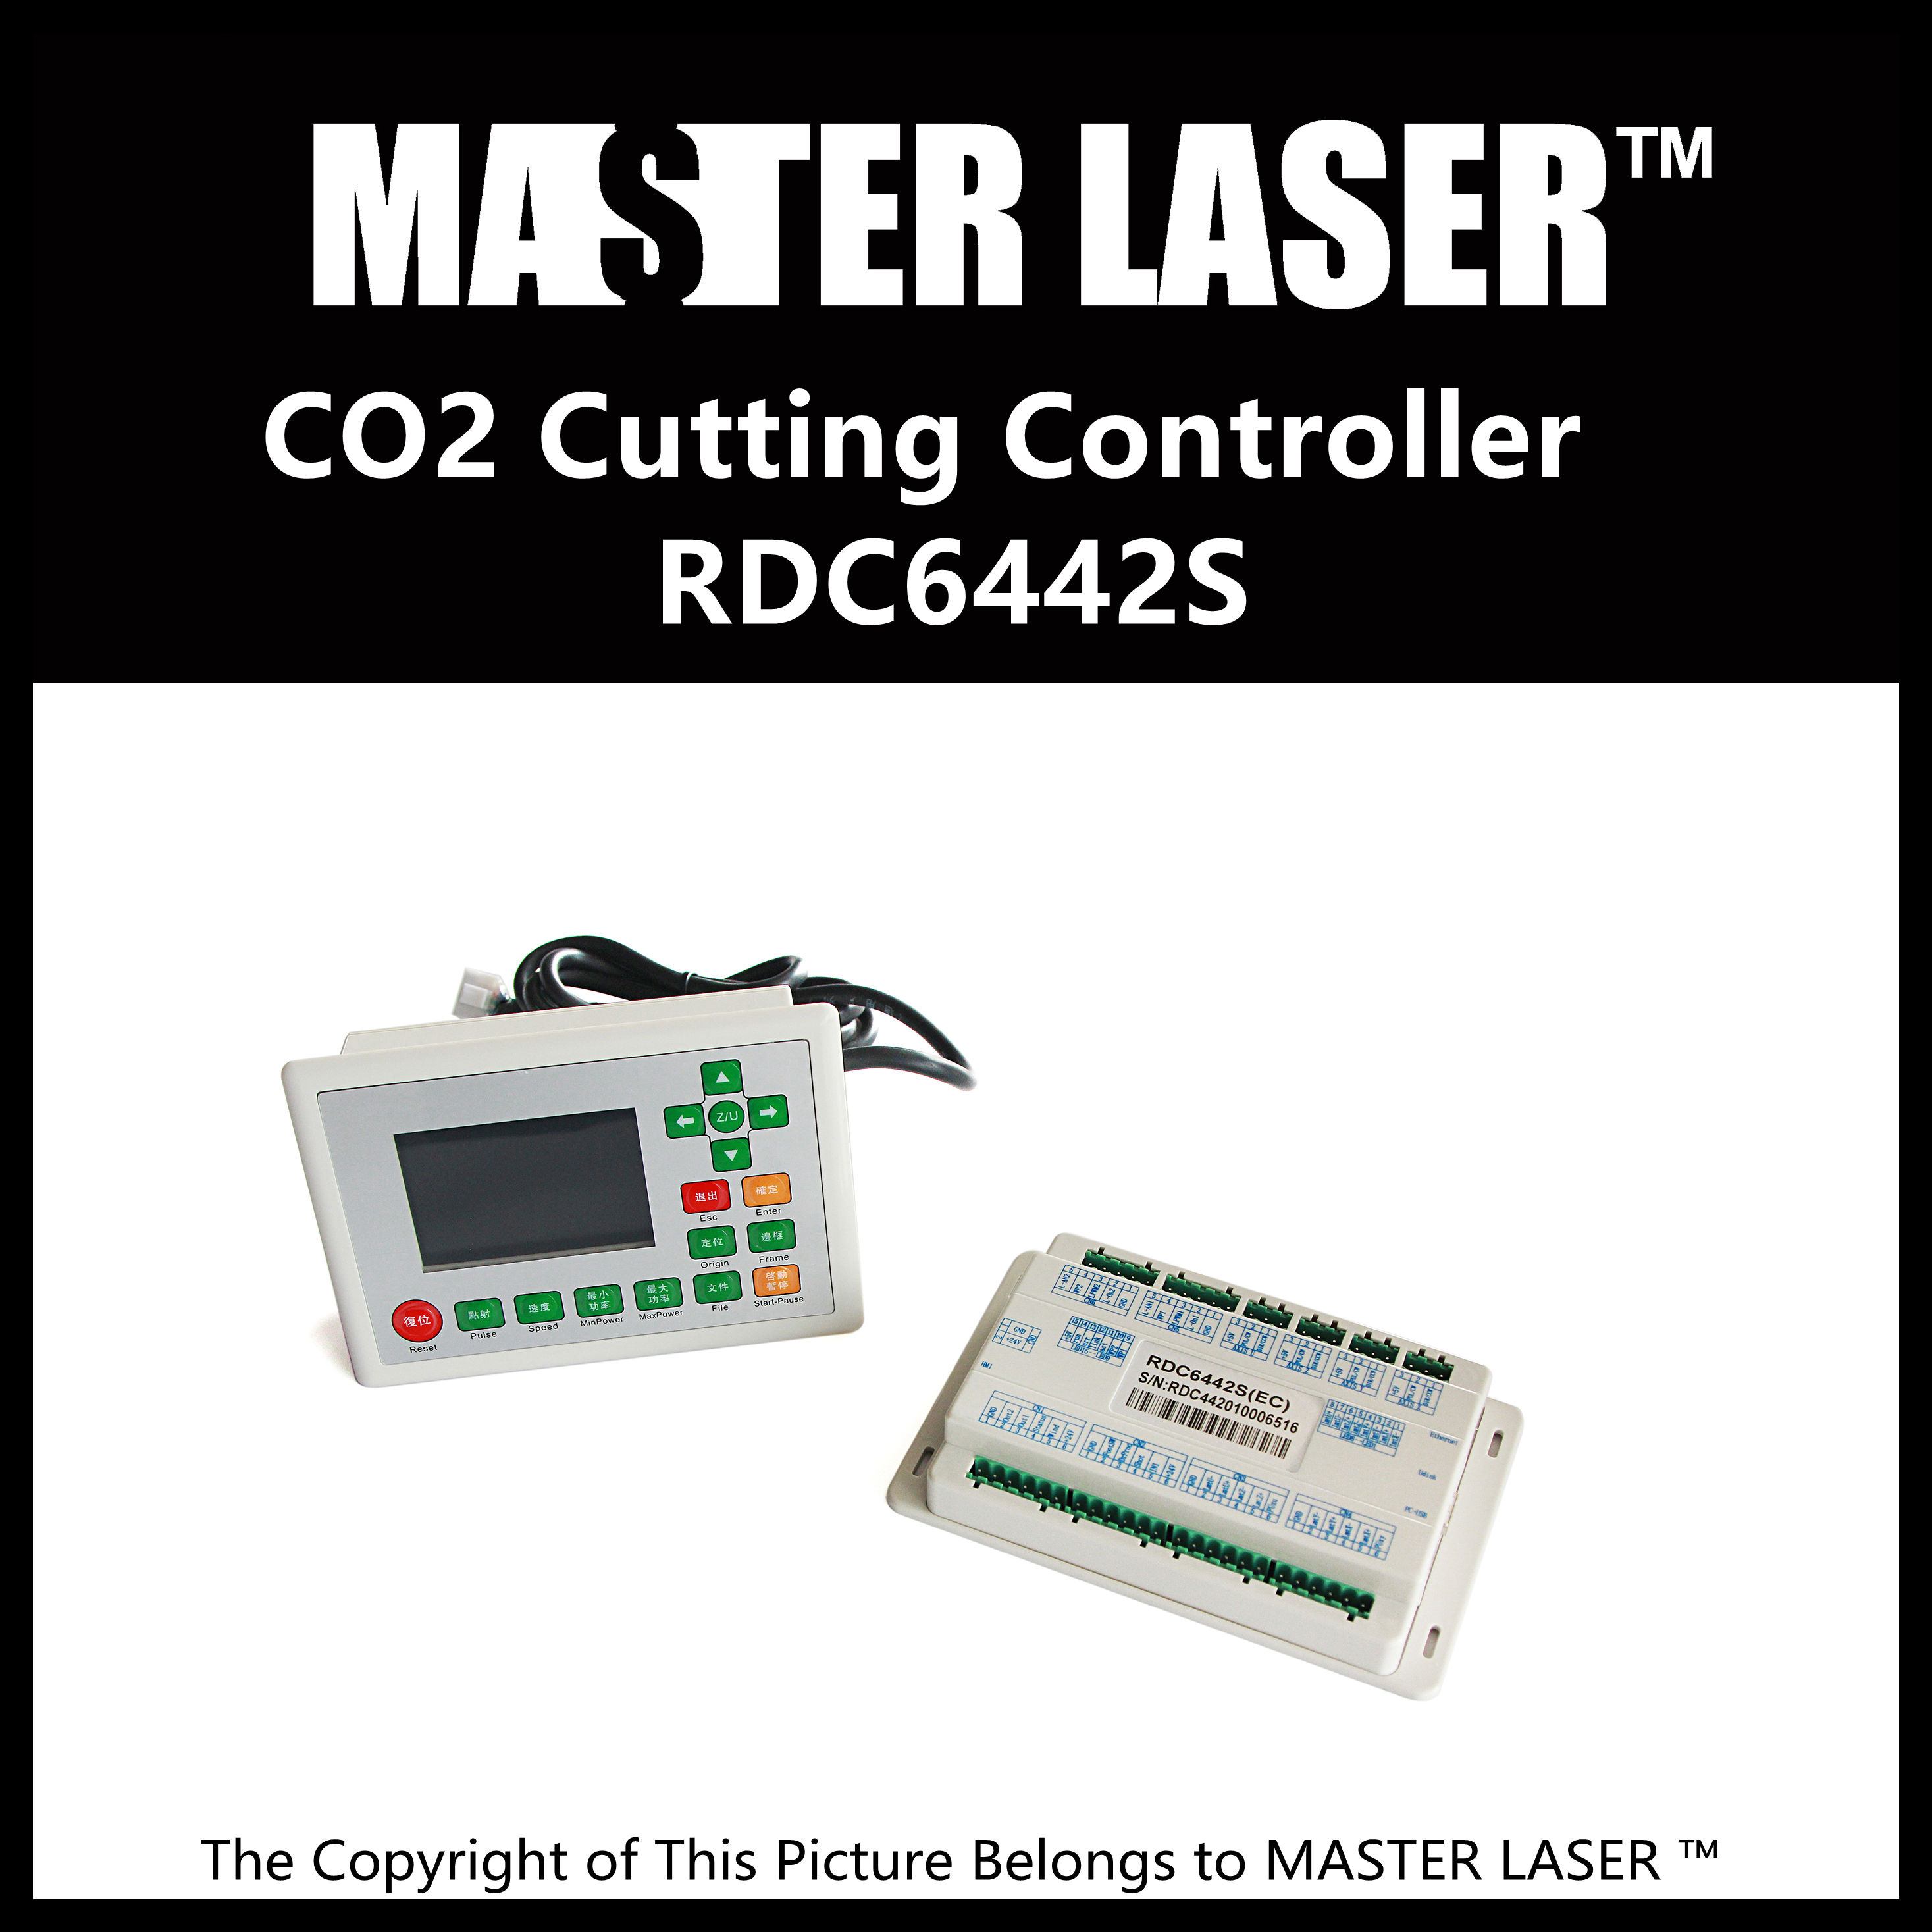 Low Price UPGRADE DSP Controller for Laser Engraving Cutting Machine RUIDA RDC6442G RDC6442S Laser Motion Control Card richauto a11 dsp controller for cnc router control dsp a11s a11e board data line